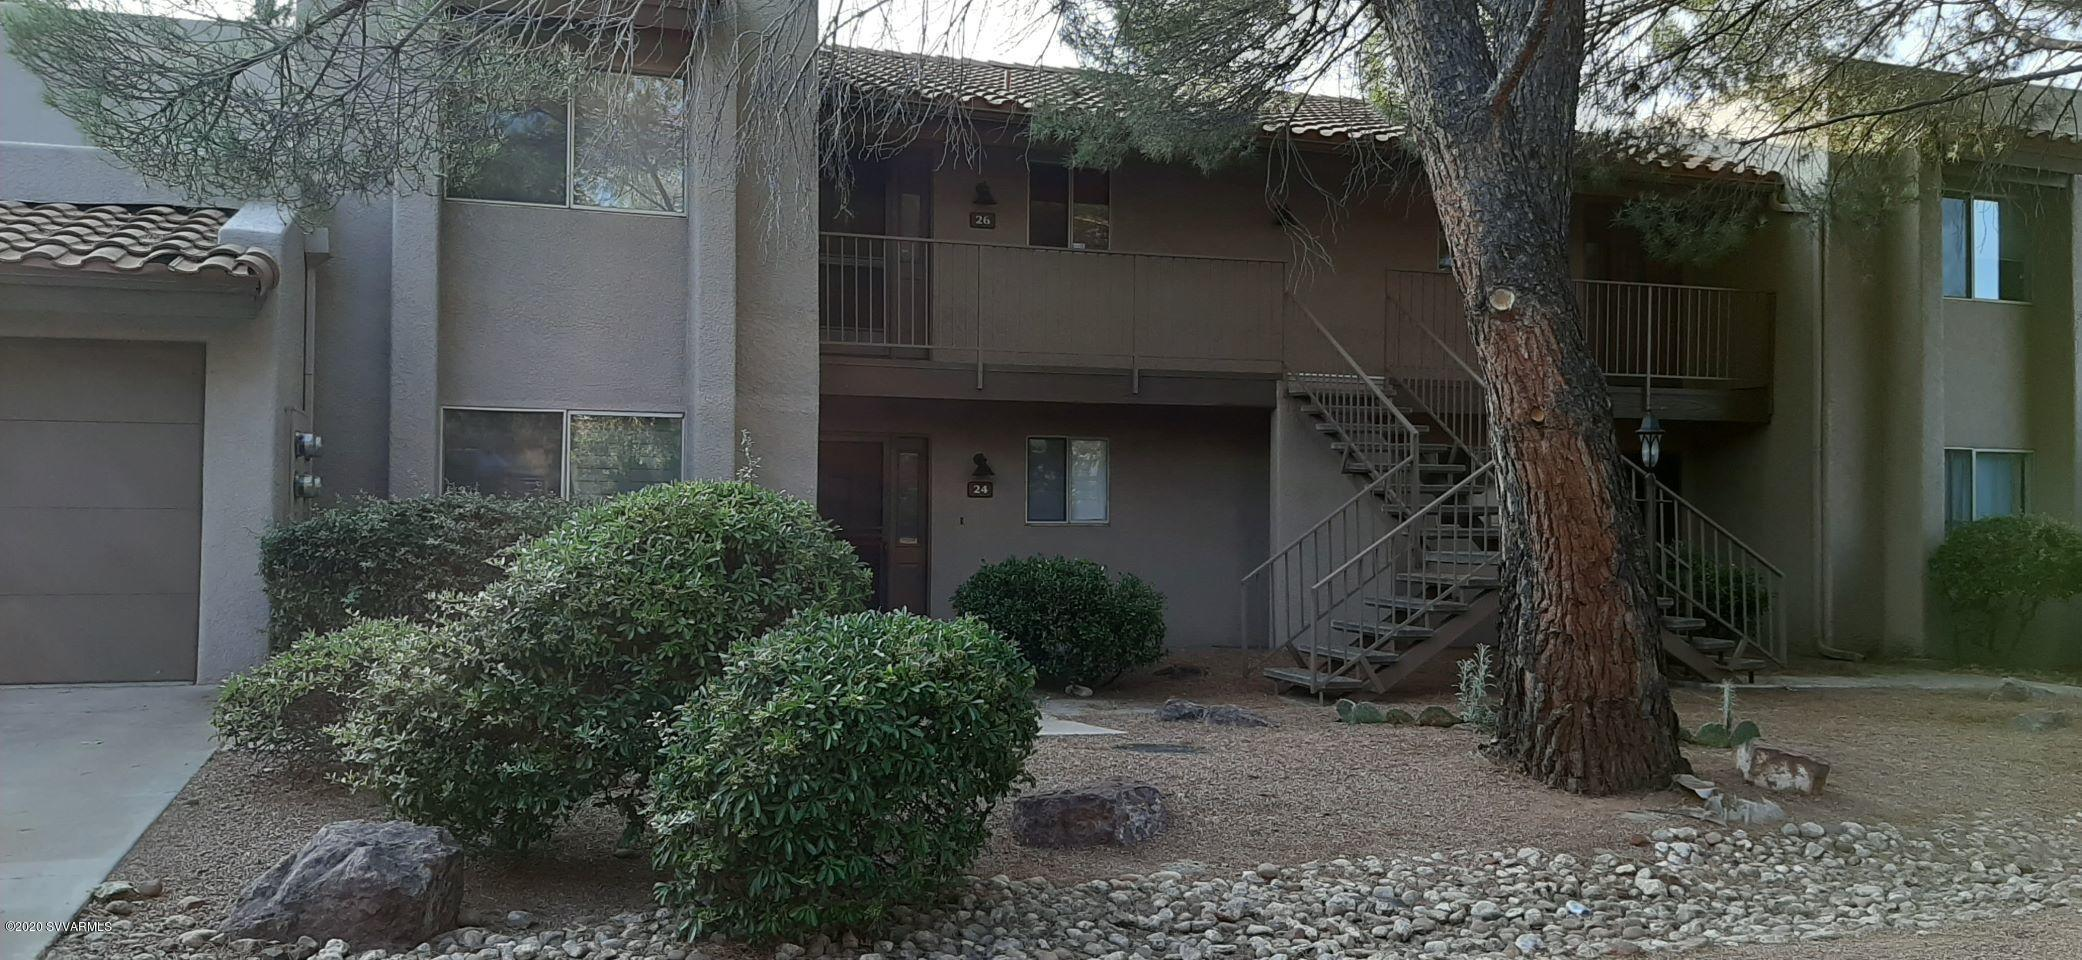 26 Tanager Lane UNIT 28 Sedona, AZ 86336